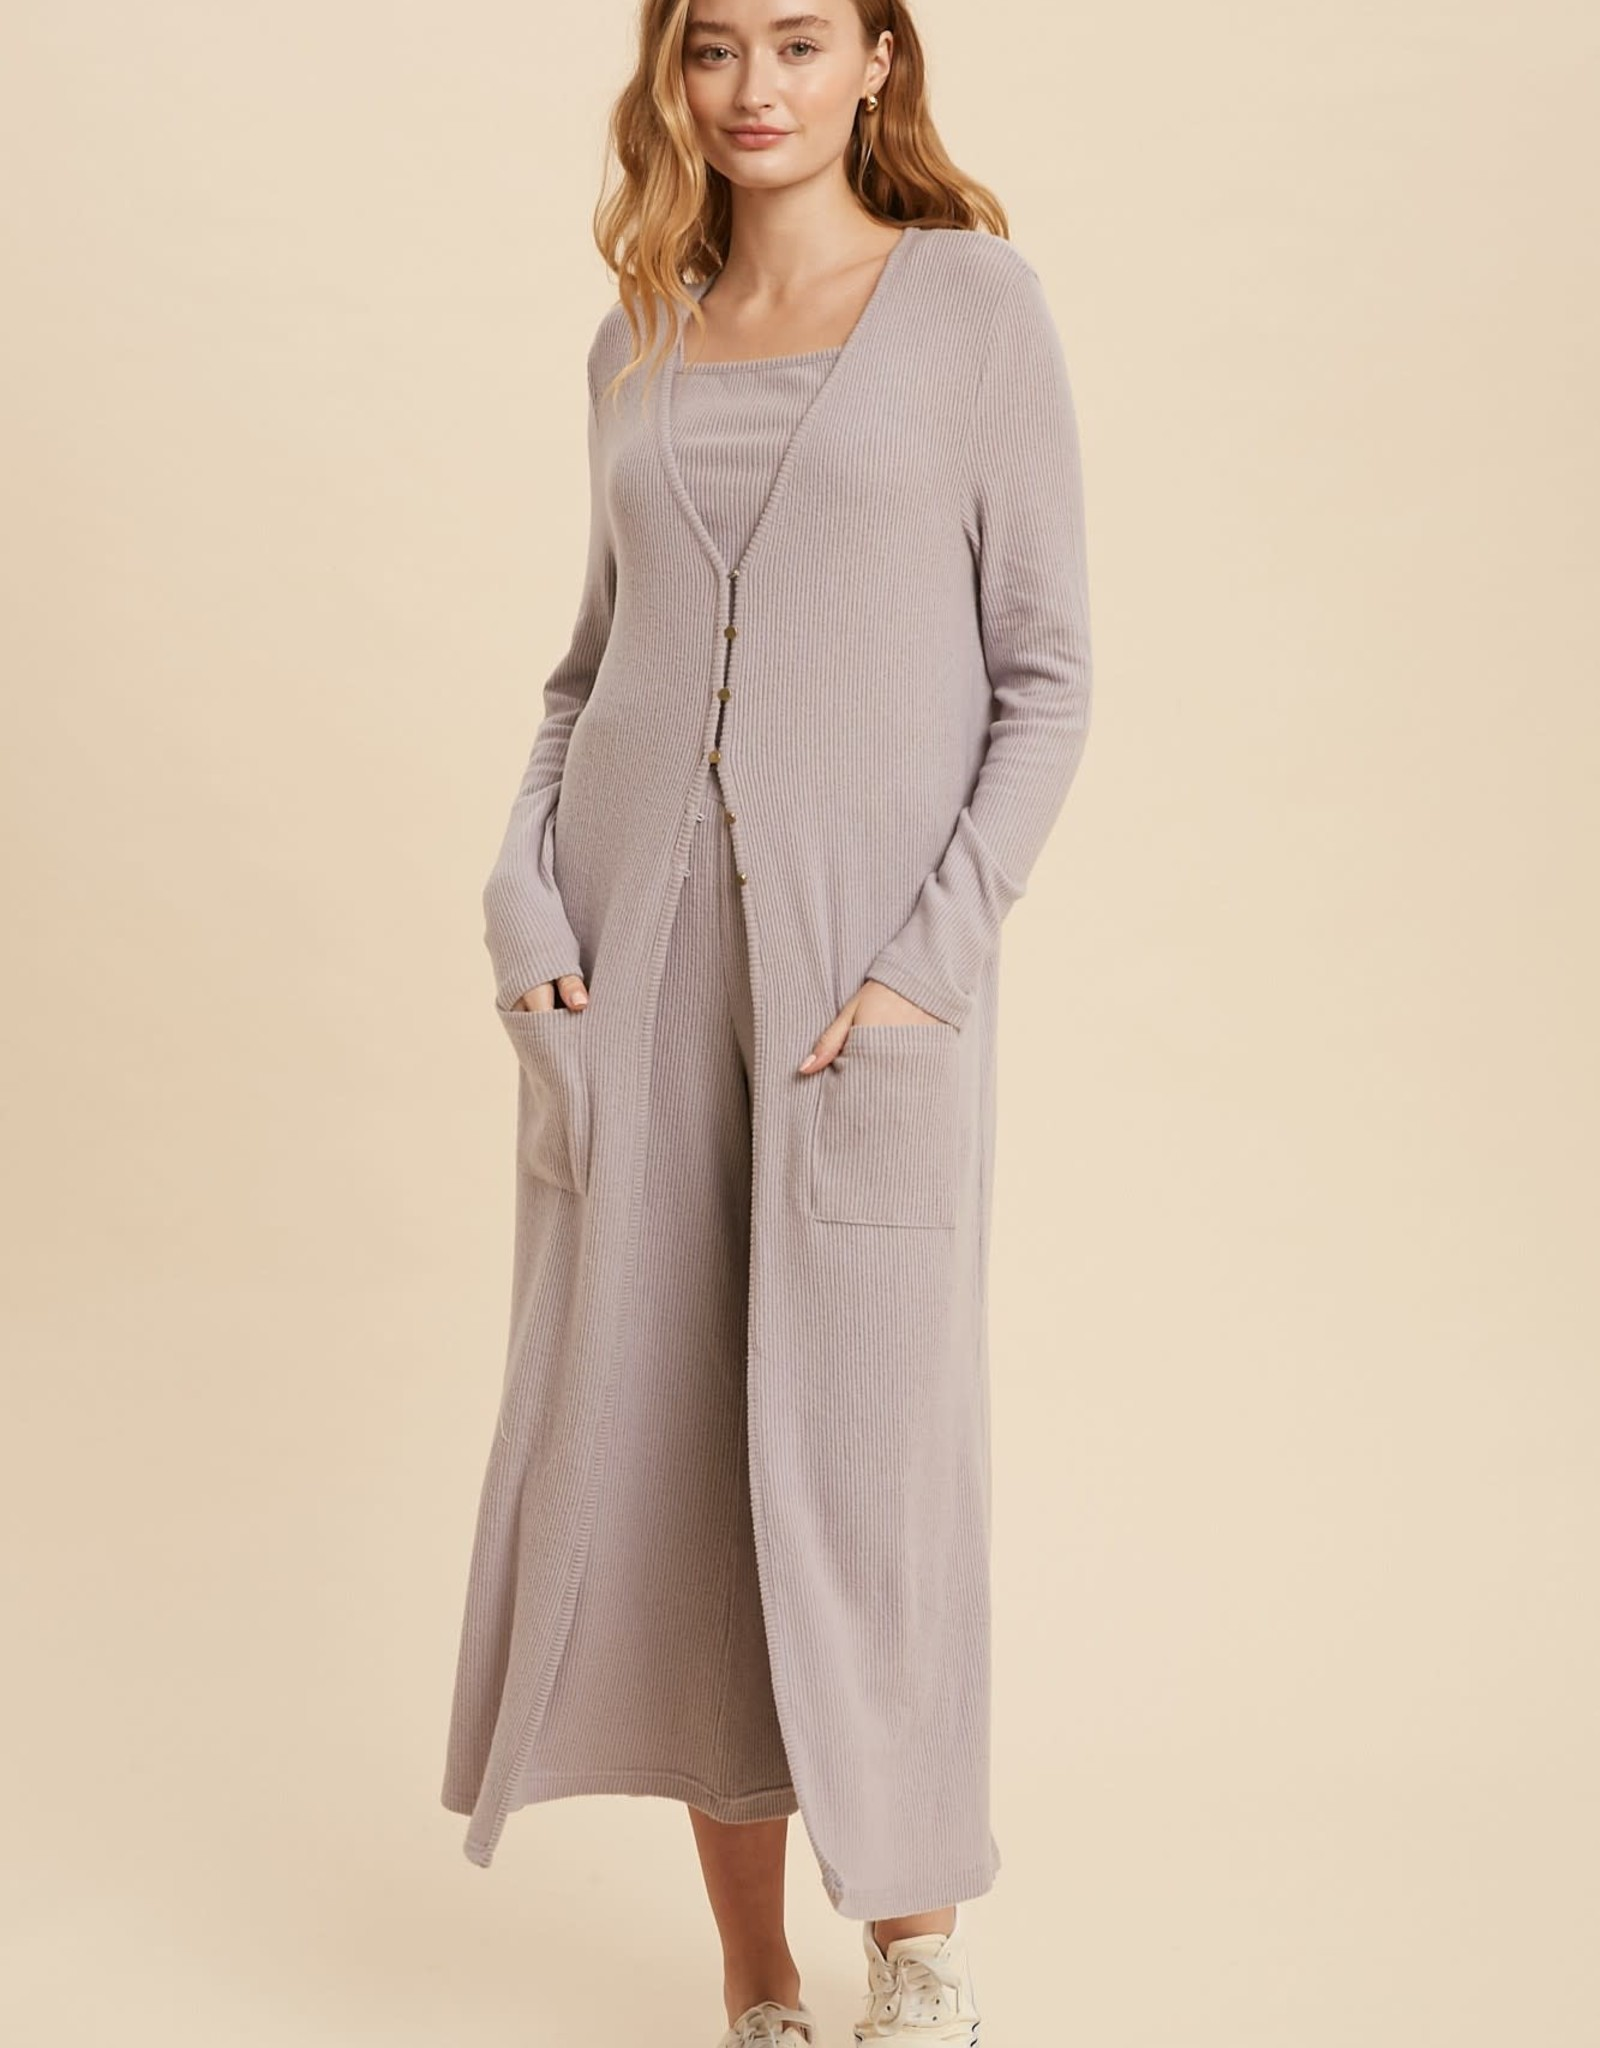 Miss Bliss Ribbed Hacci Duster Cardigan- Lilac Ash